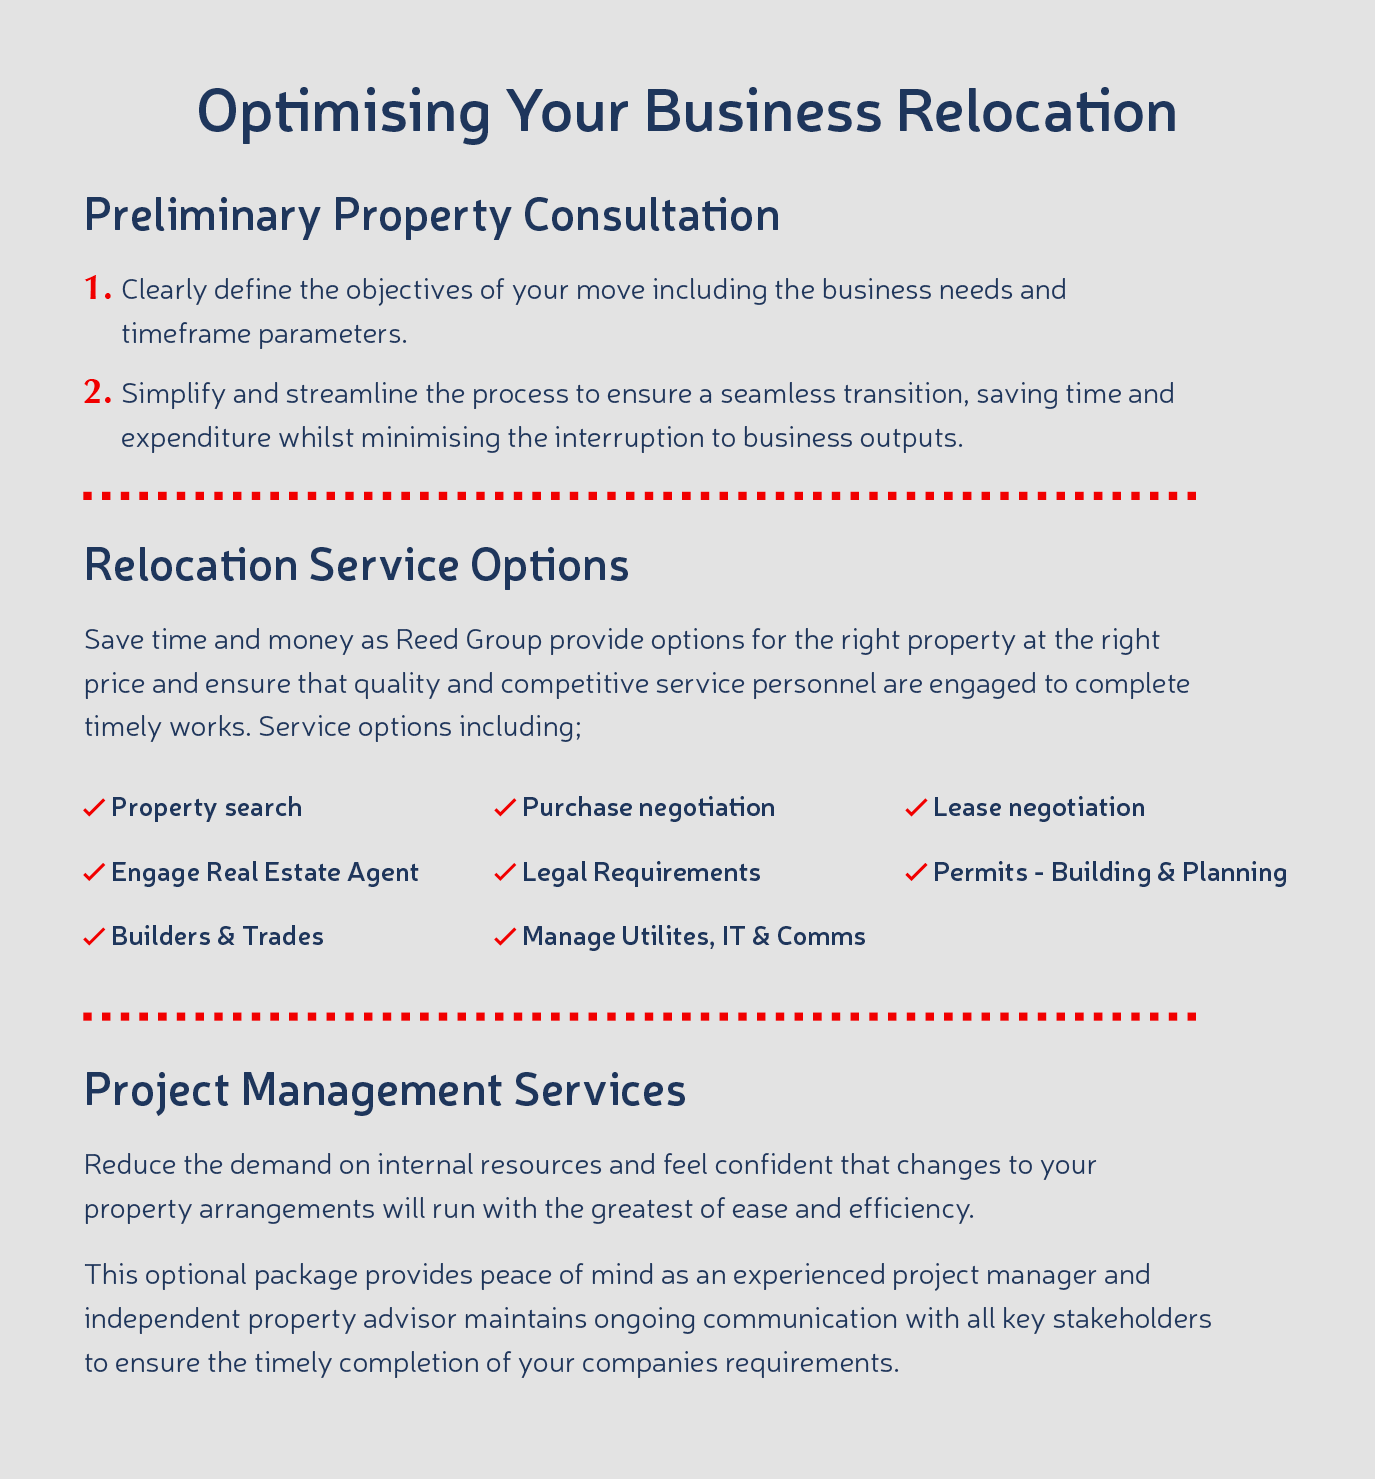 Optimising Your Business Relocation - Reed Group Property